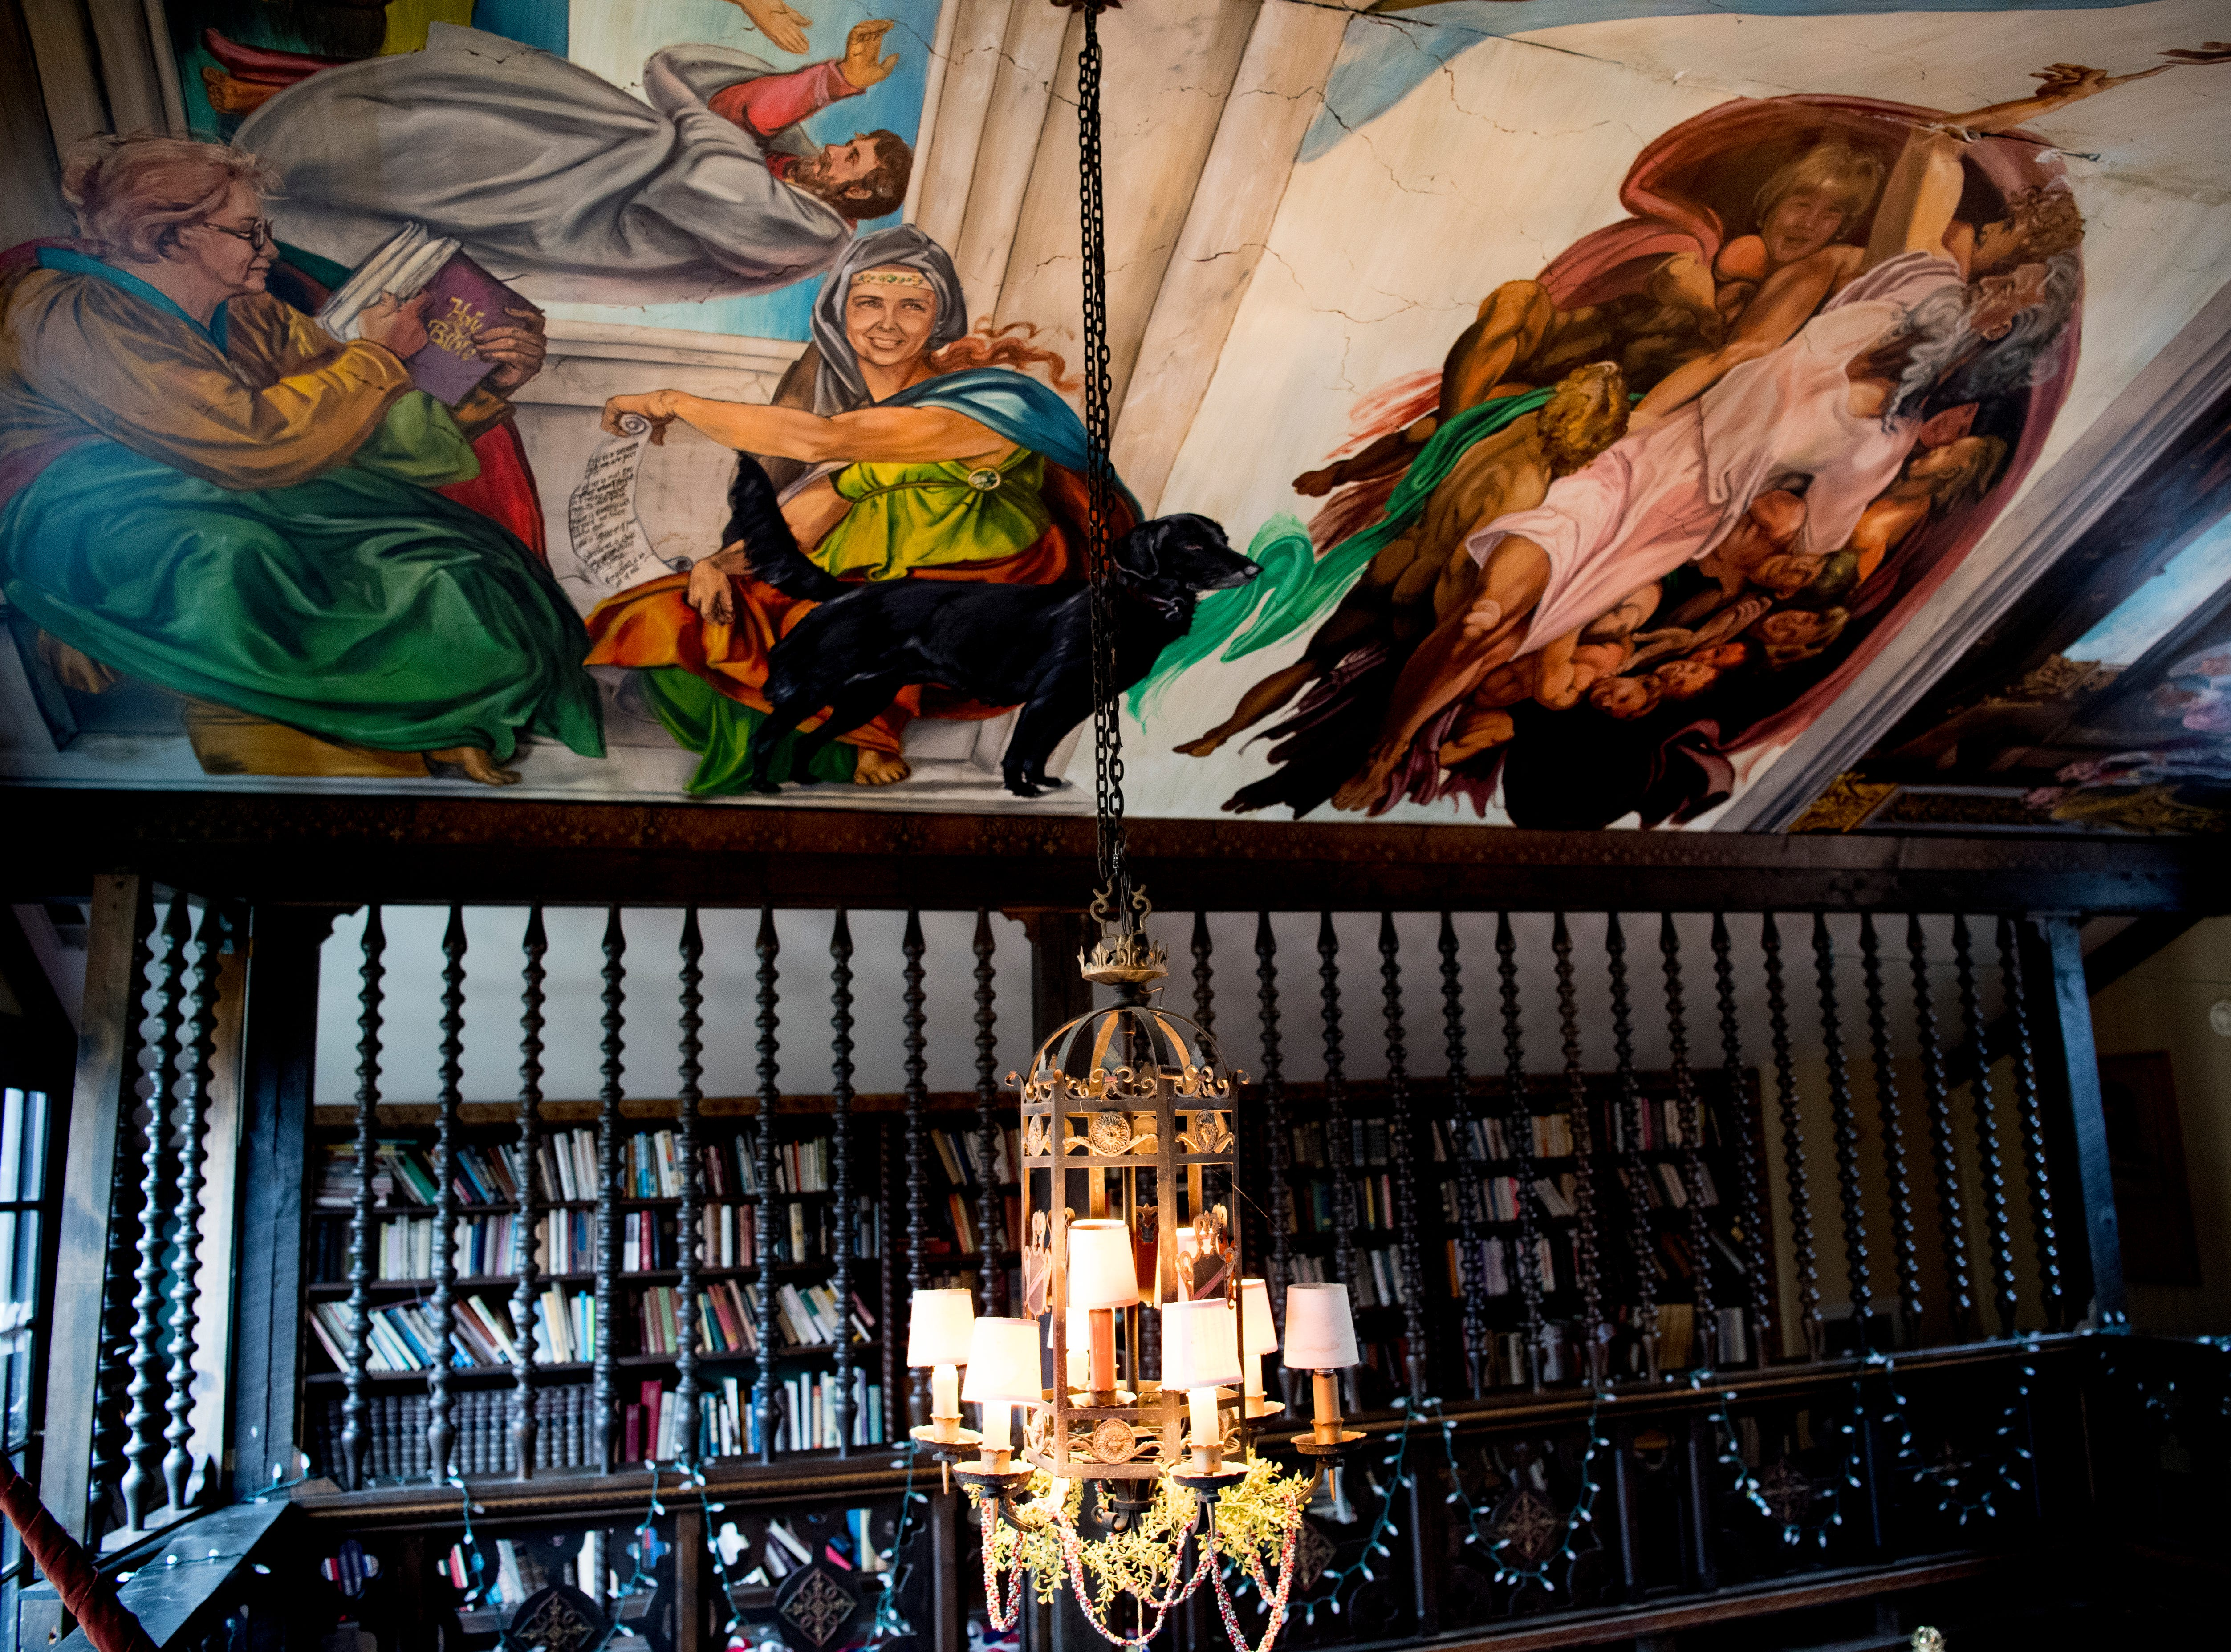 A painted ceiling inside the master bedroom features family members as characters in the paiting inside Williamswood Castle in South Knoxville, Tennessee on Thursday, January 17, 2019. The home, modeled after a medieval castle, was built by Julia Tucker in 1991 and took 6 years to complete. Many of the items in the home were sourced from around the Knoxville area.